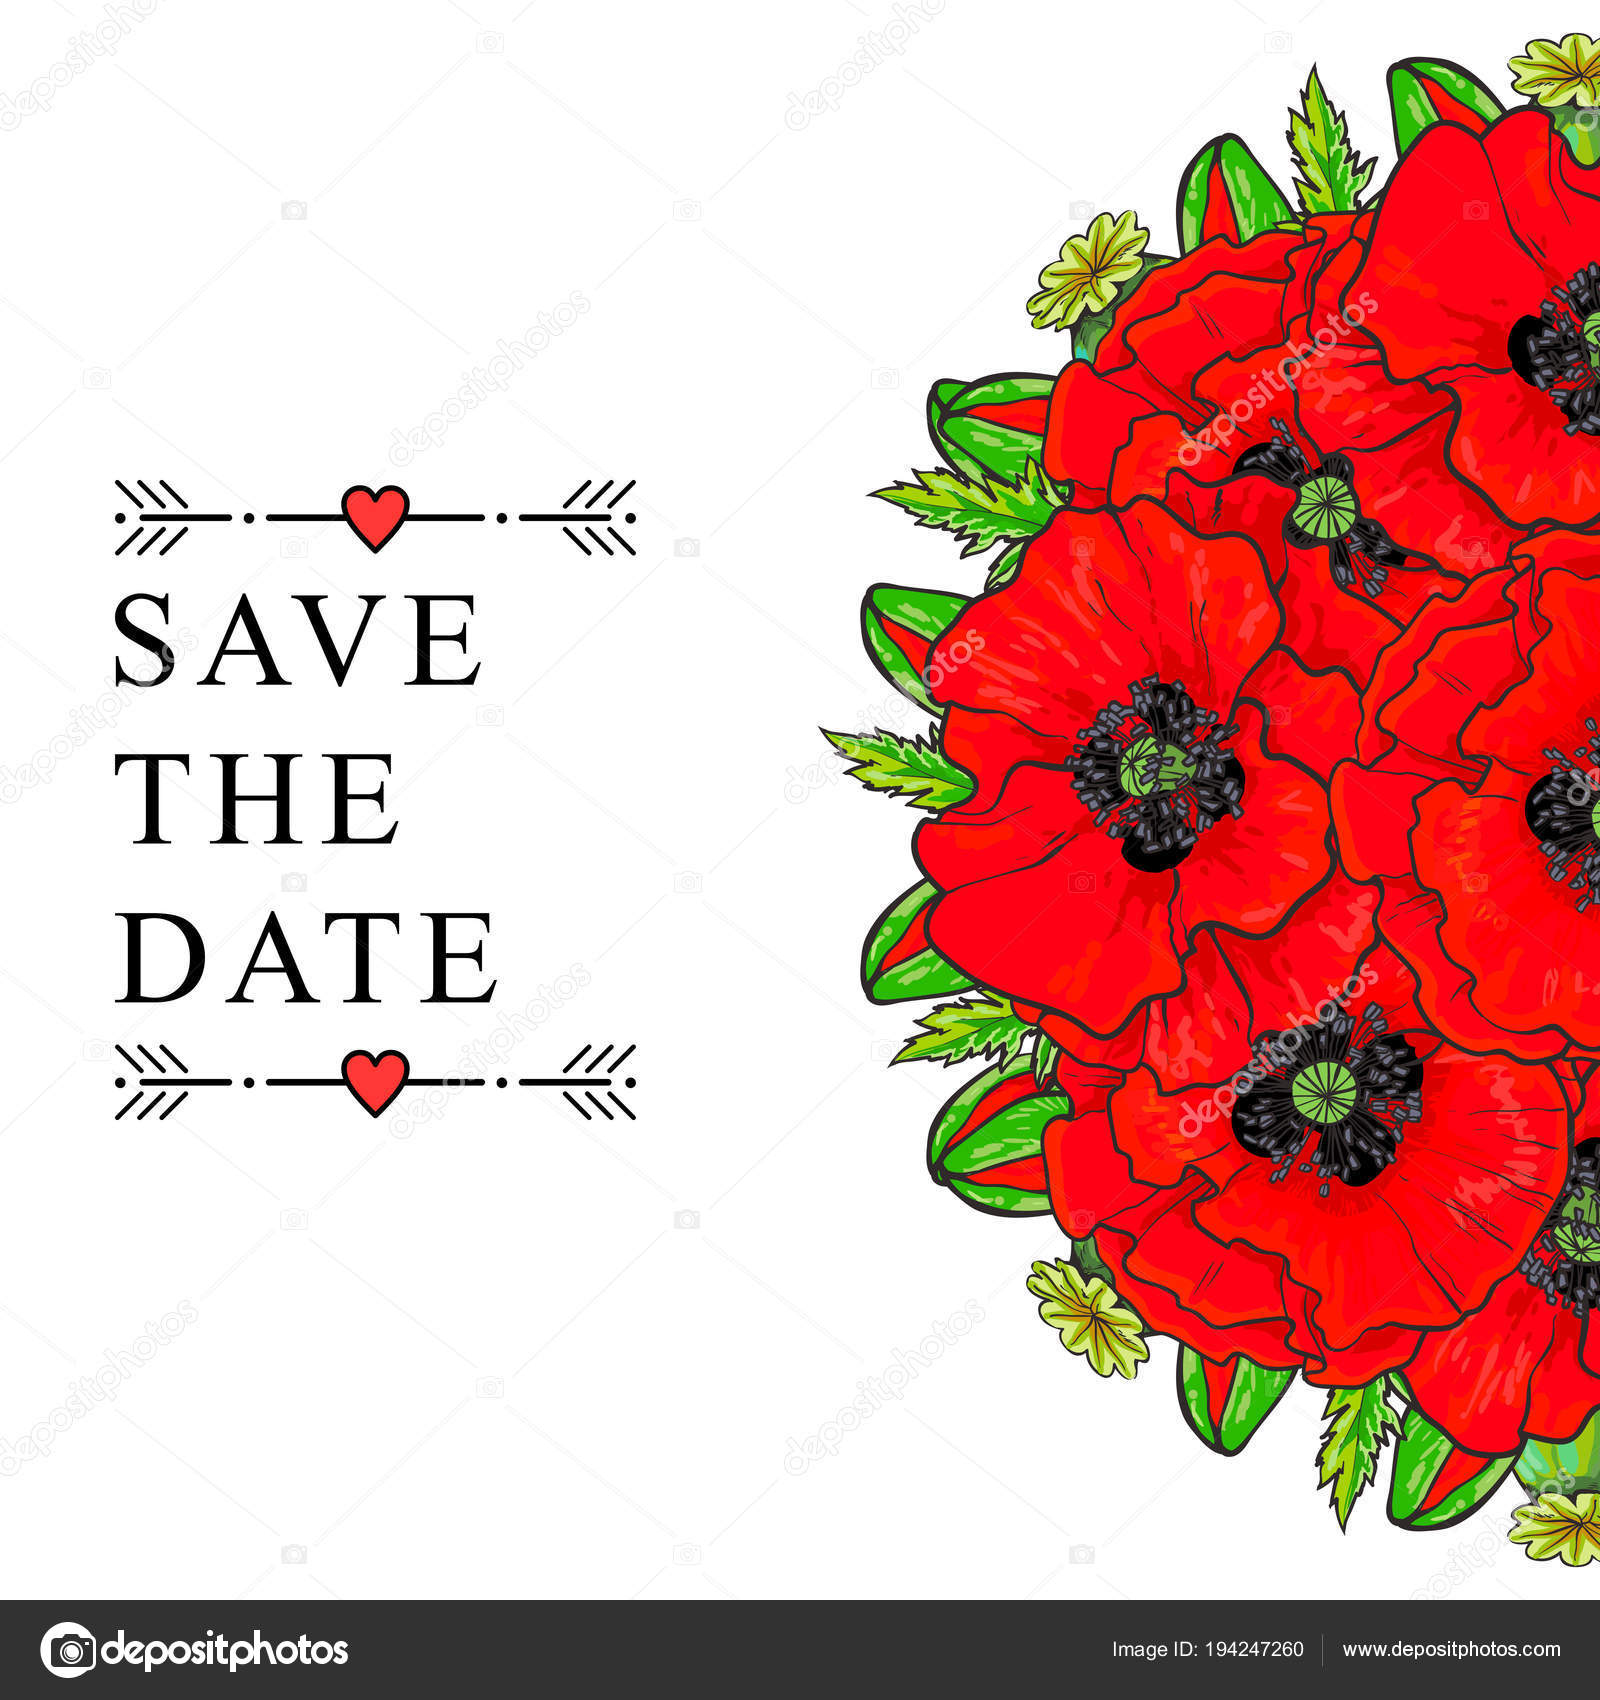 Save the date wedding invitation template, poppies — Stock Vector ...